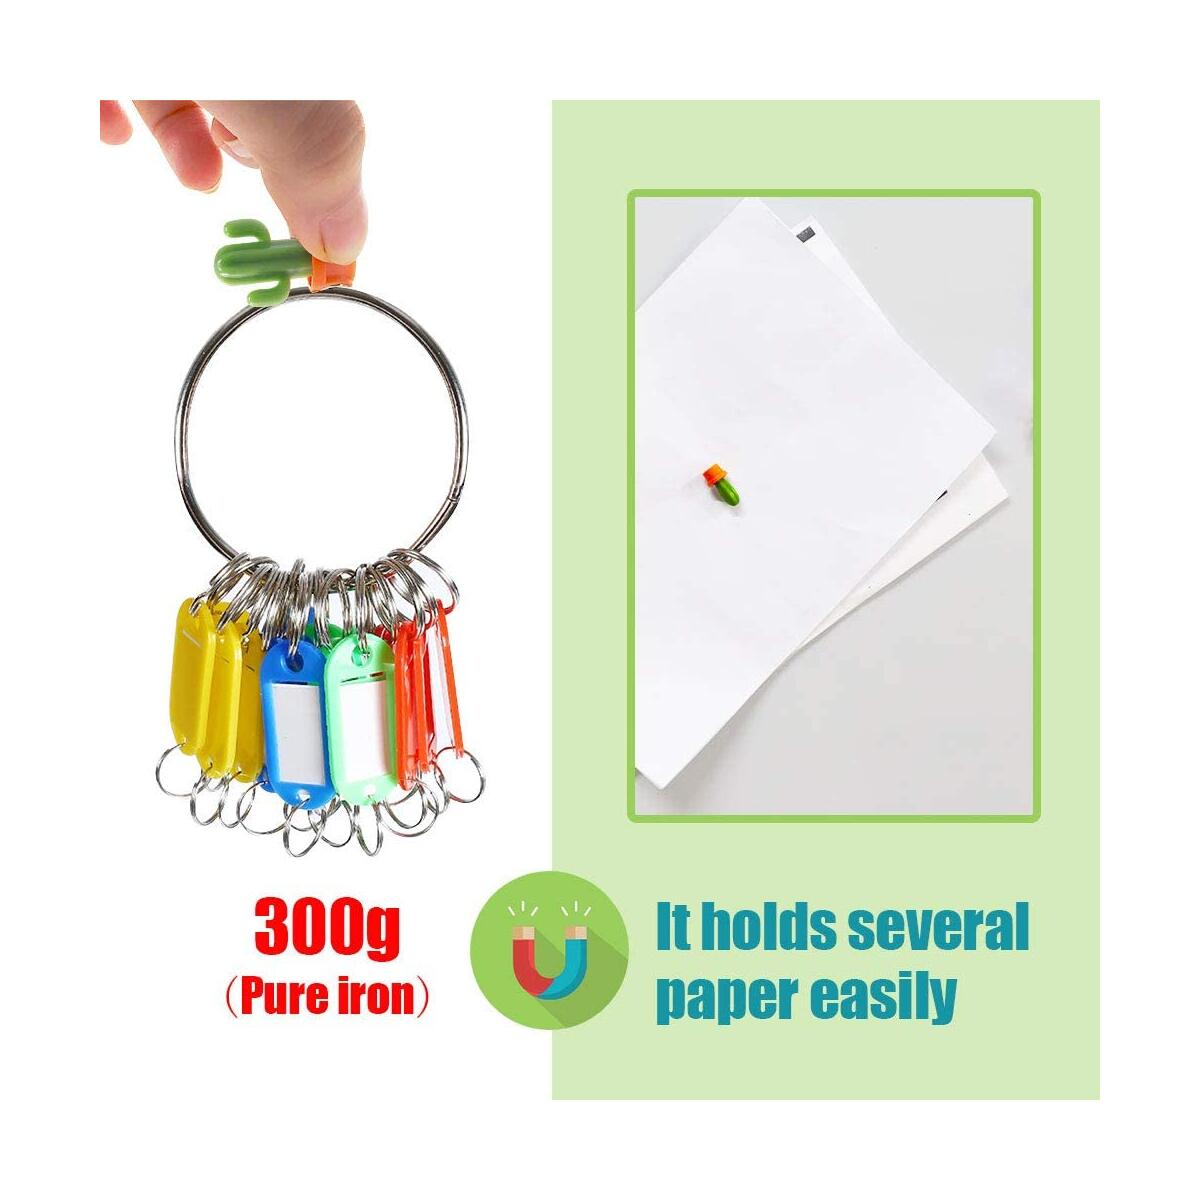 48 Pcs Decorative Refrigerator Magnets,Tiny Fridge Deocr,6 Style Cactus, Perfect for Metal Shelf,Filing Cabinet,Office Cube etc. Great for Holding Photos,Pictures,Papers,Invites,Receipt,Small Stuff